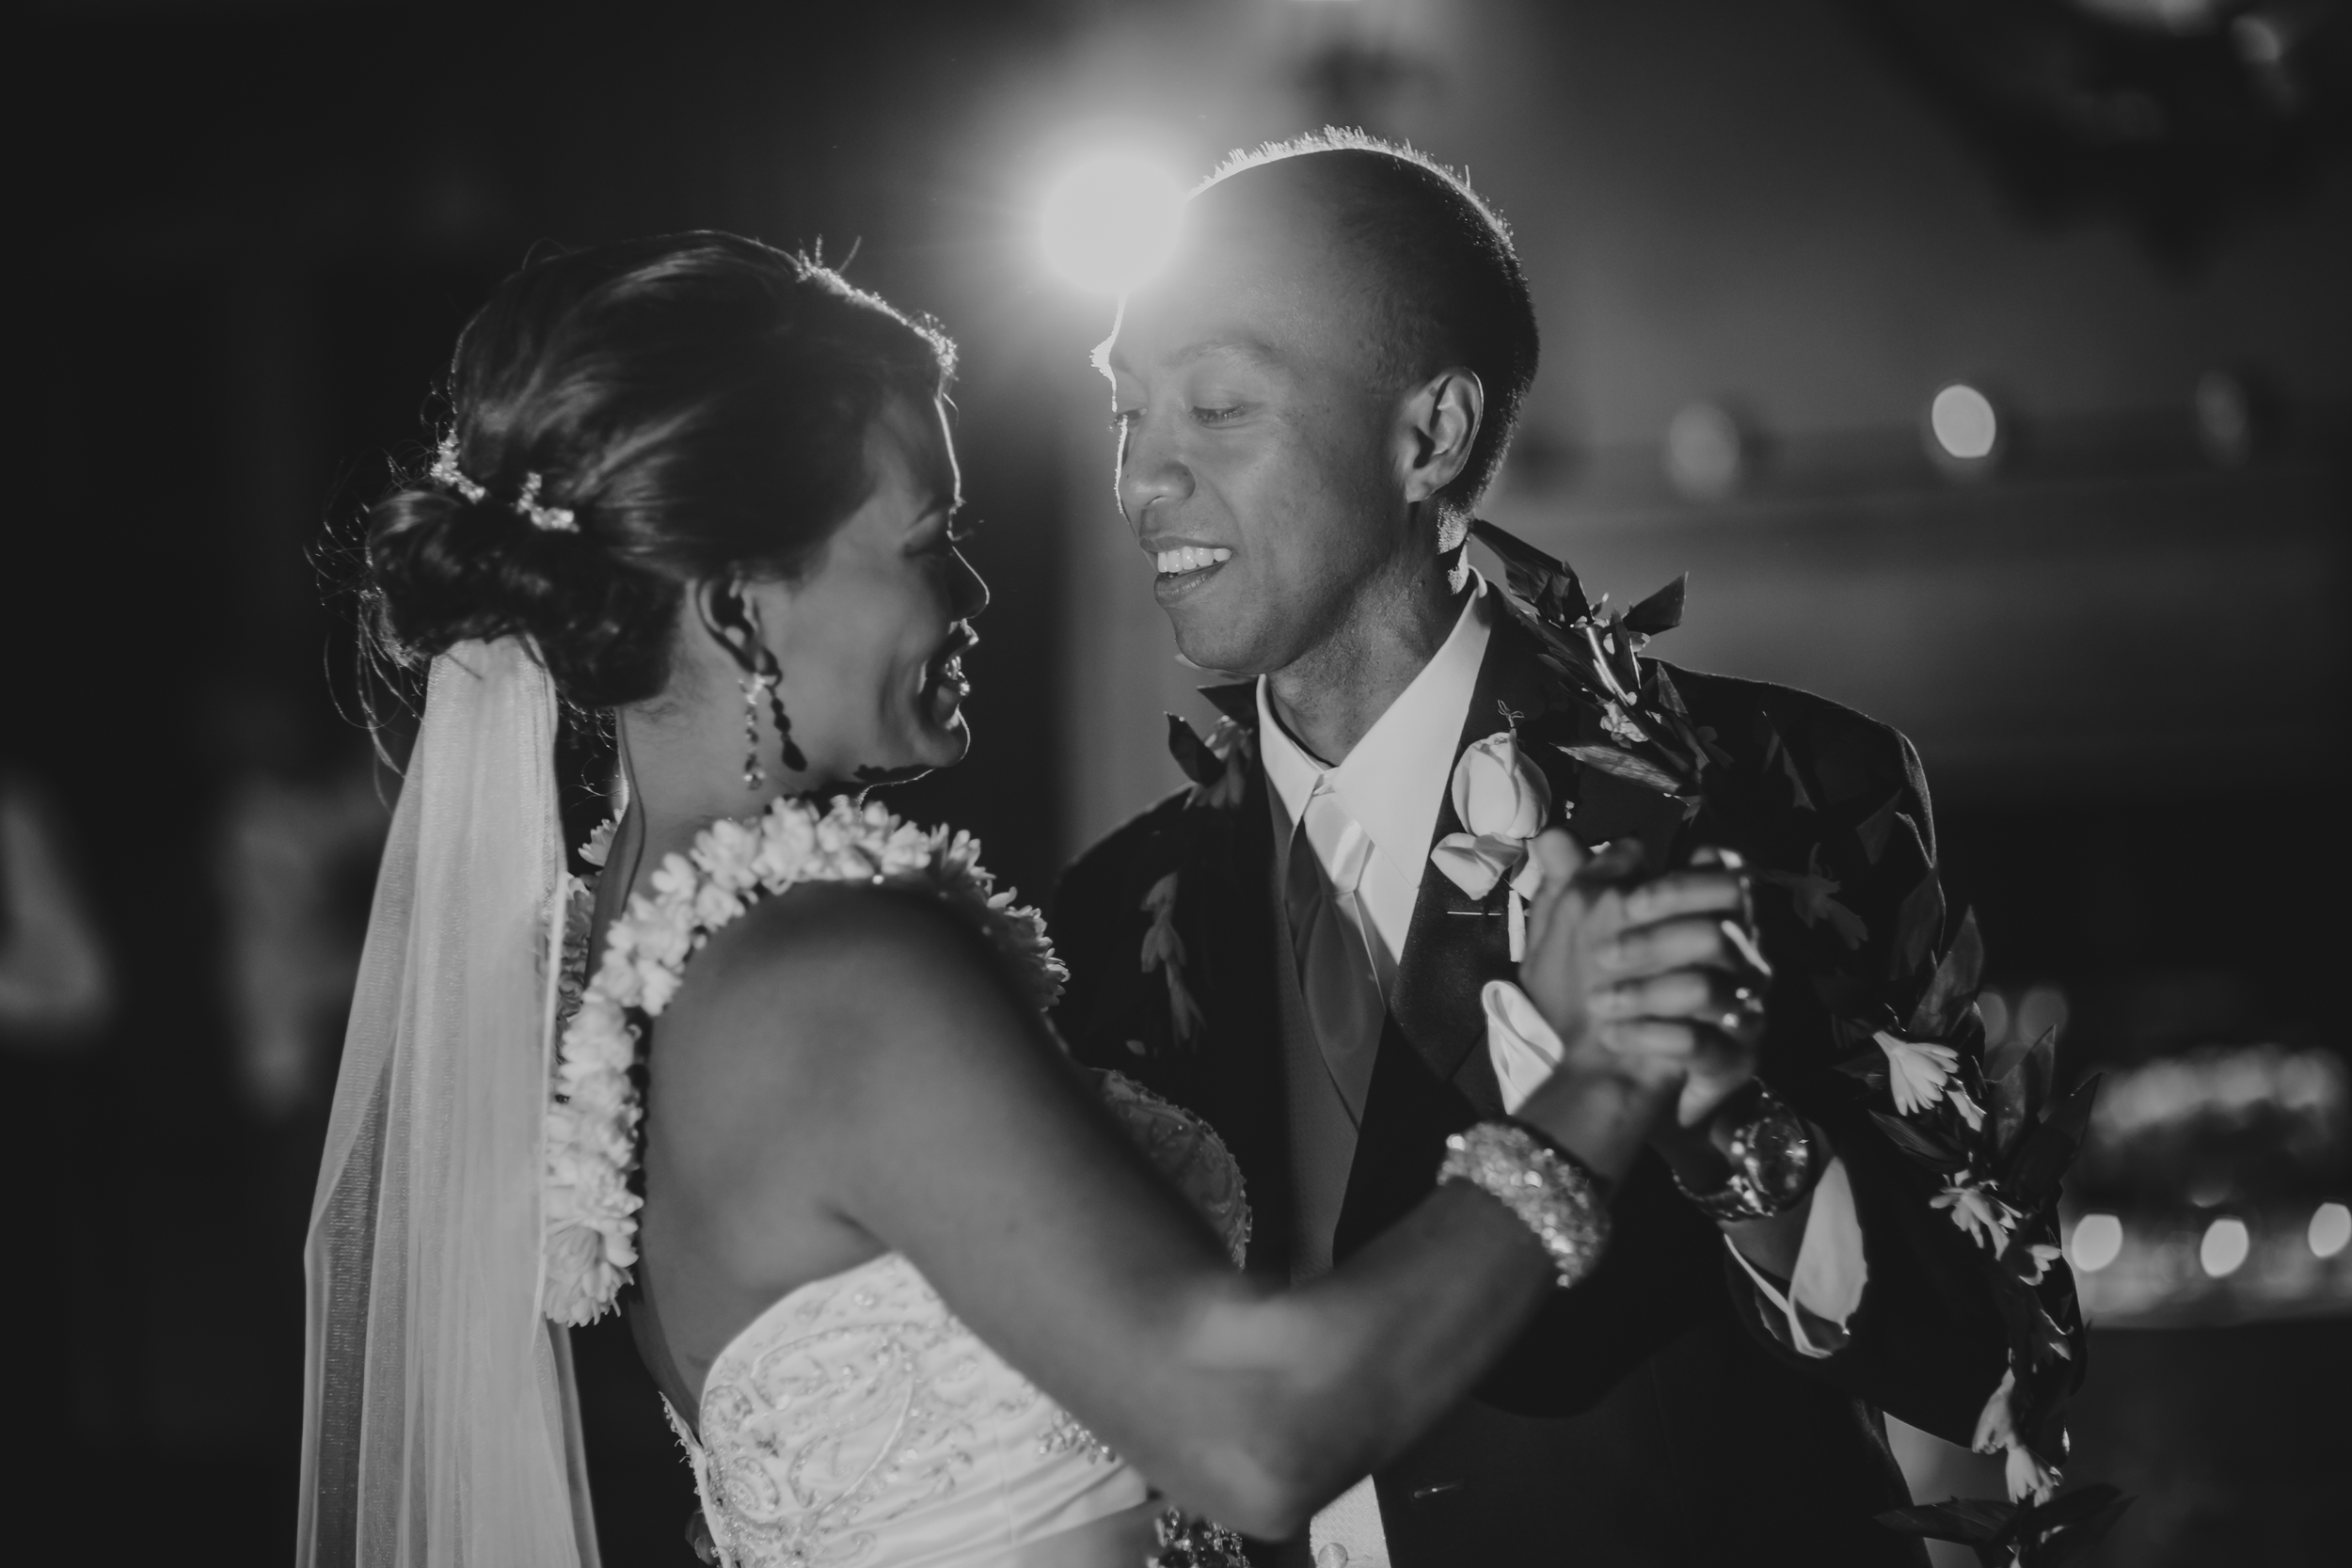 Shiela + Lester's Wedding 9-30-15 324.jpg